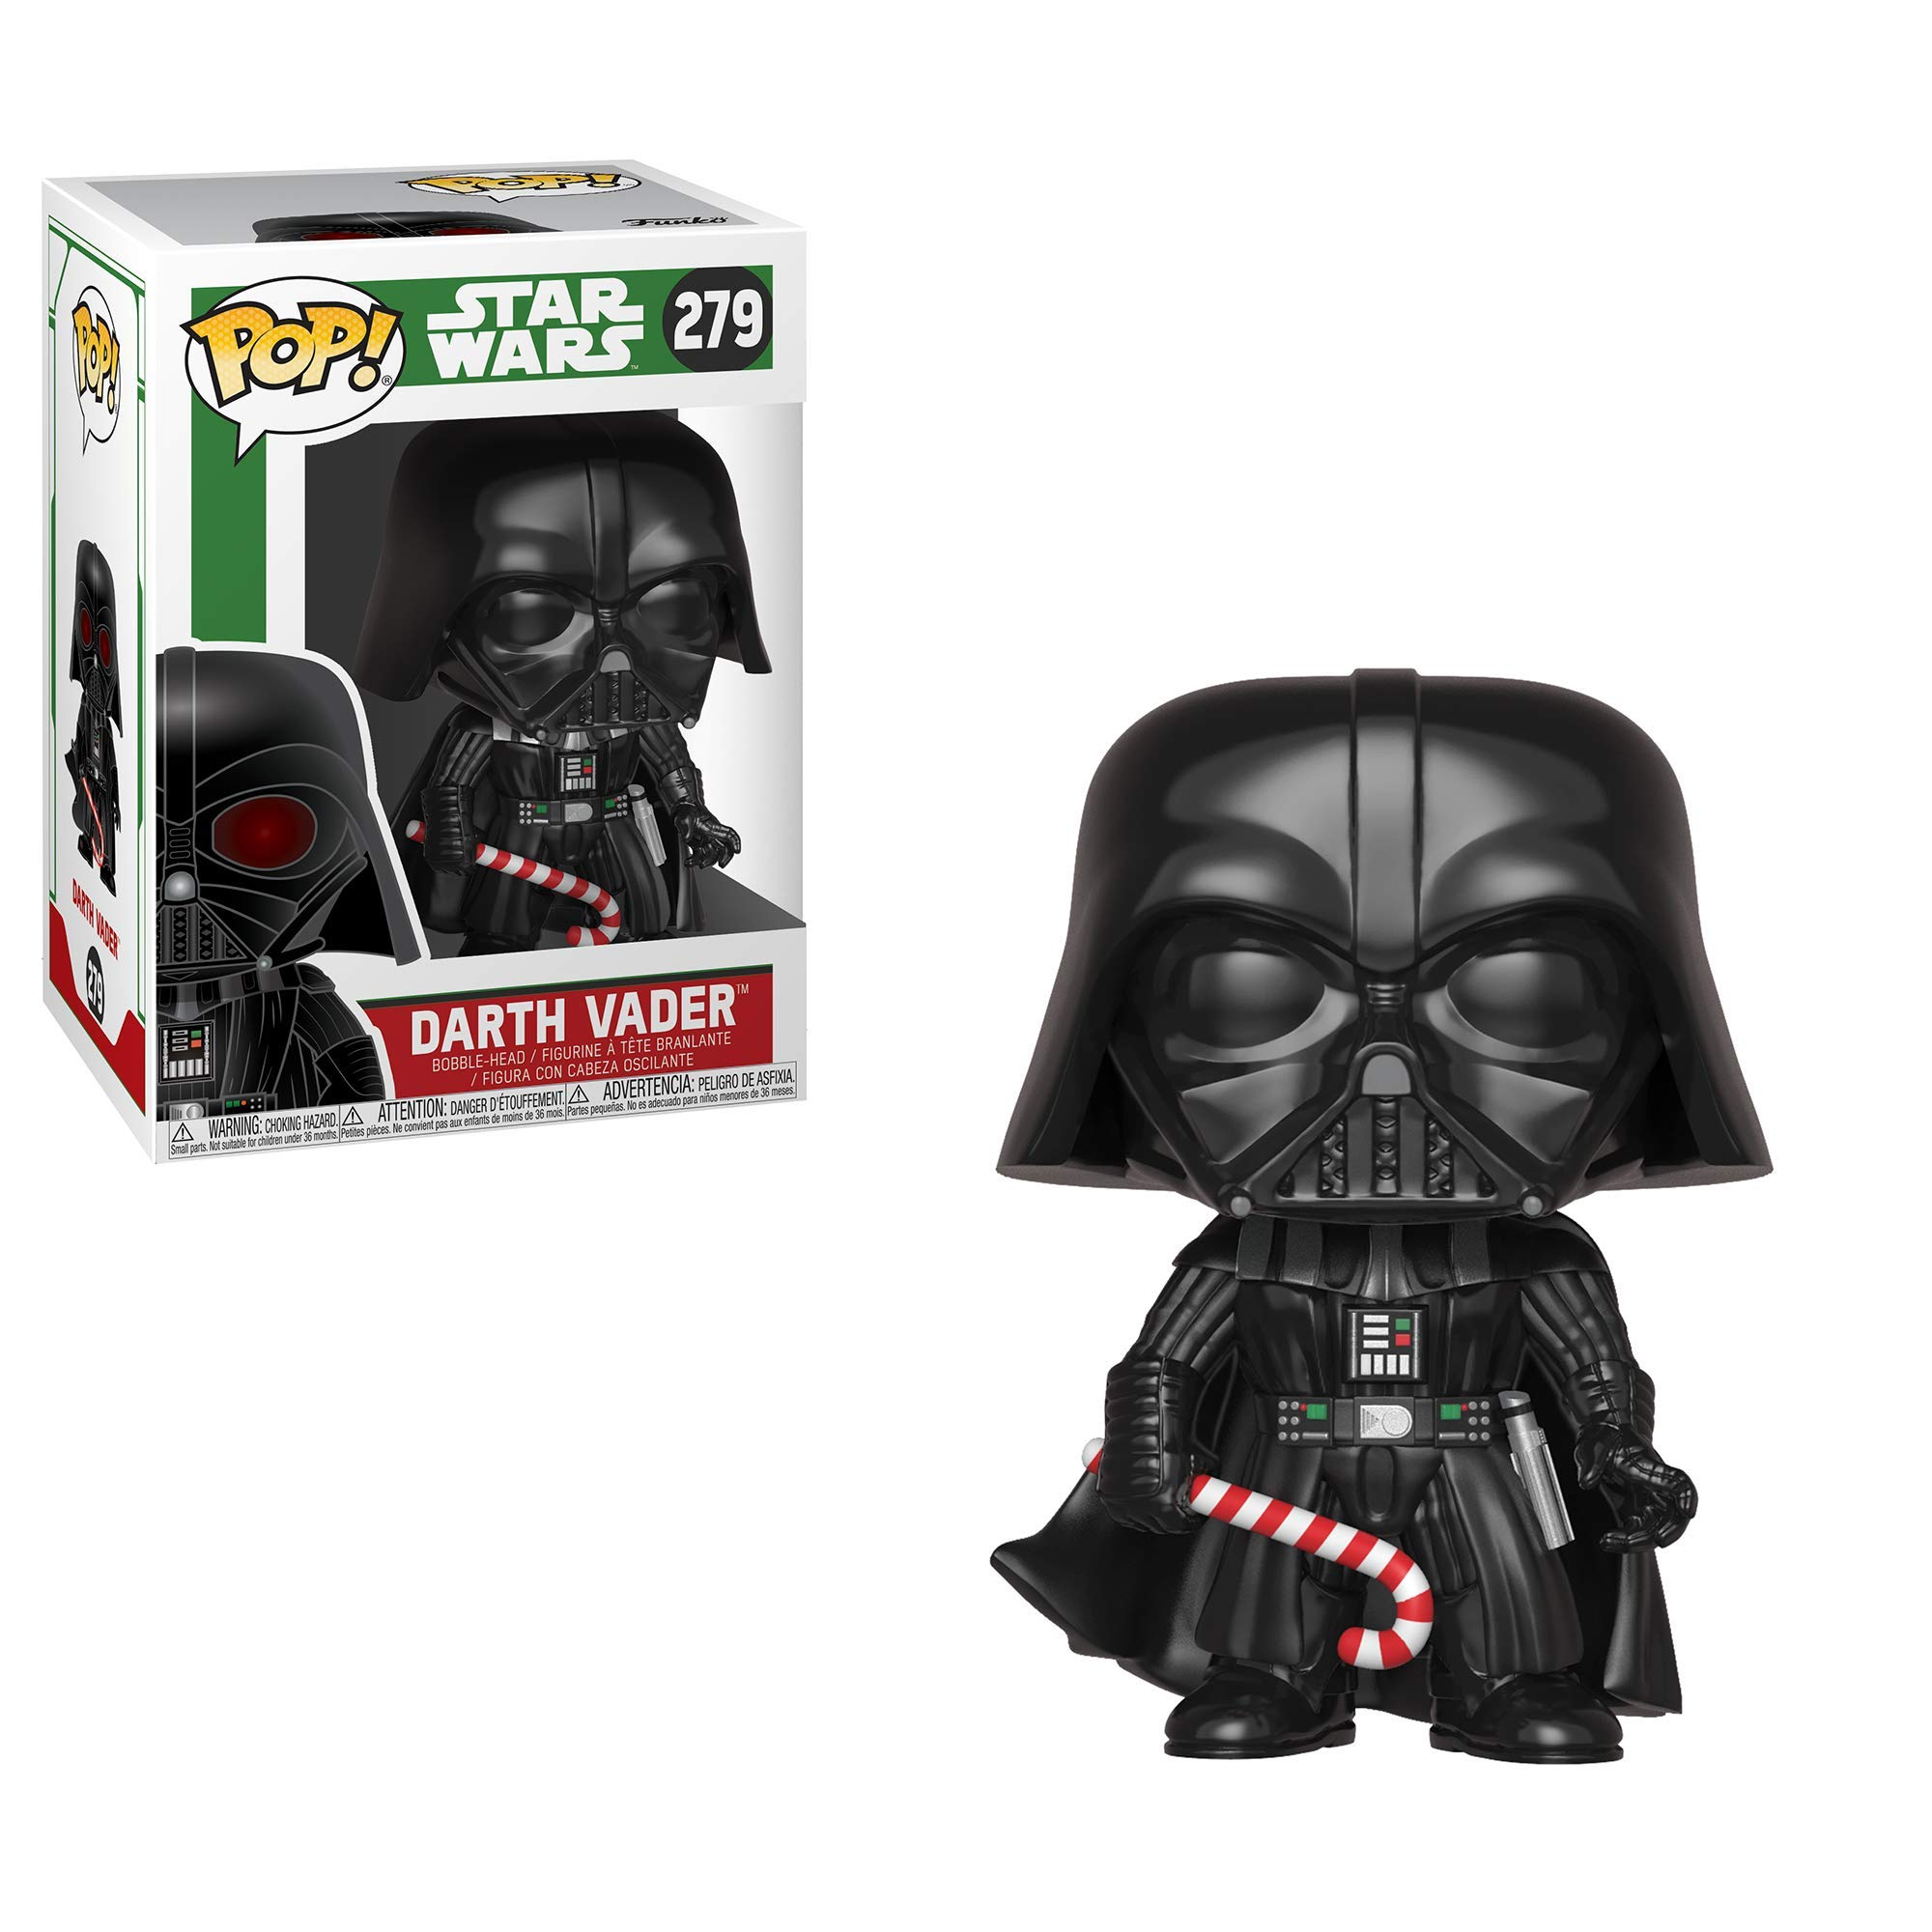 Funko Pop Star Wars: Holiday - Darth Vader with Candy Cane (Styles May Vary) Collectible Figure, Multicolor by Funko (Image #2)